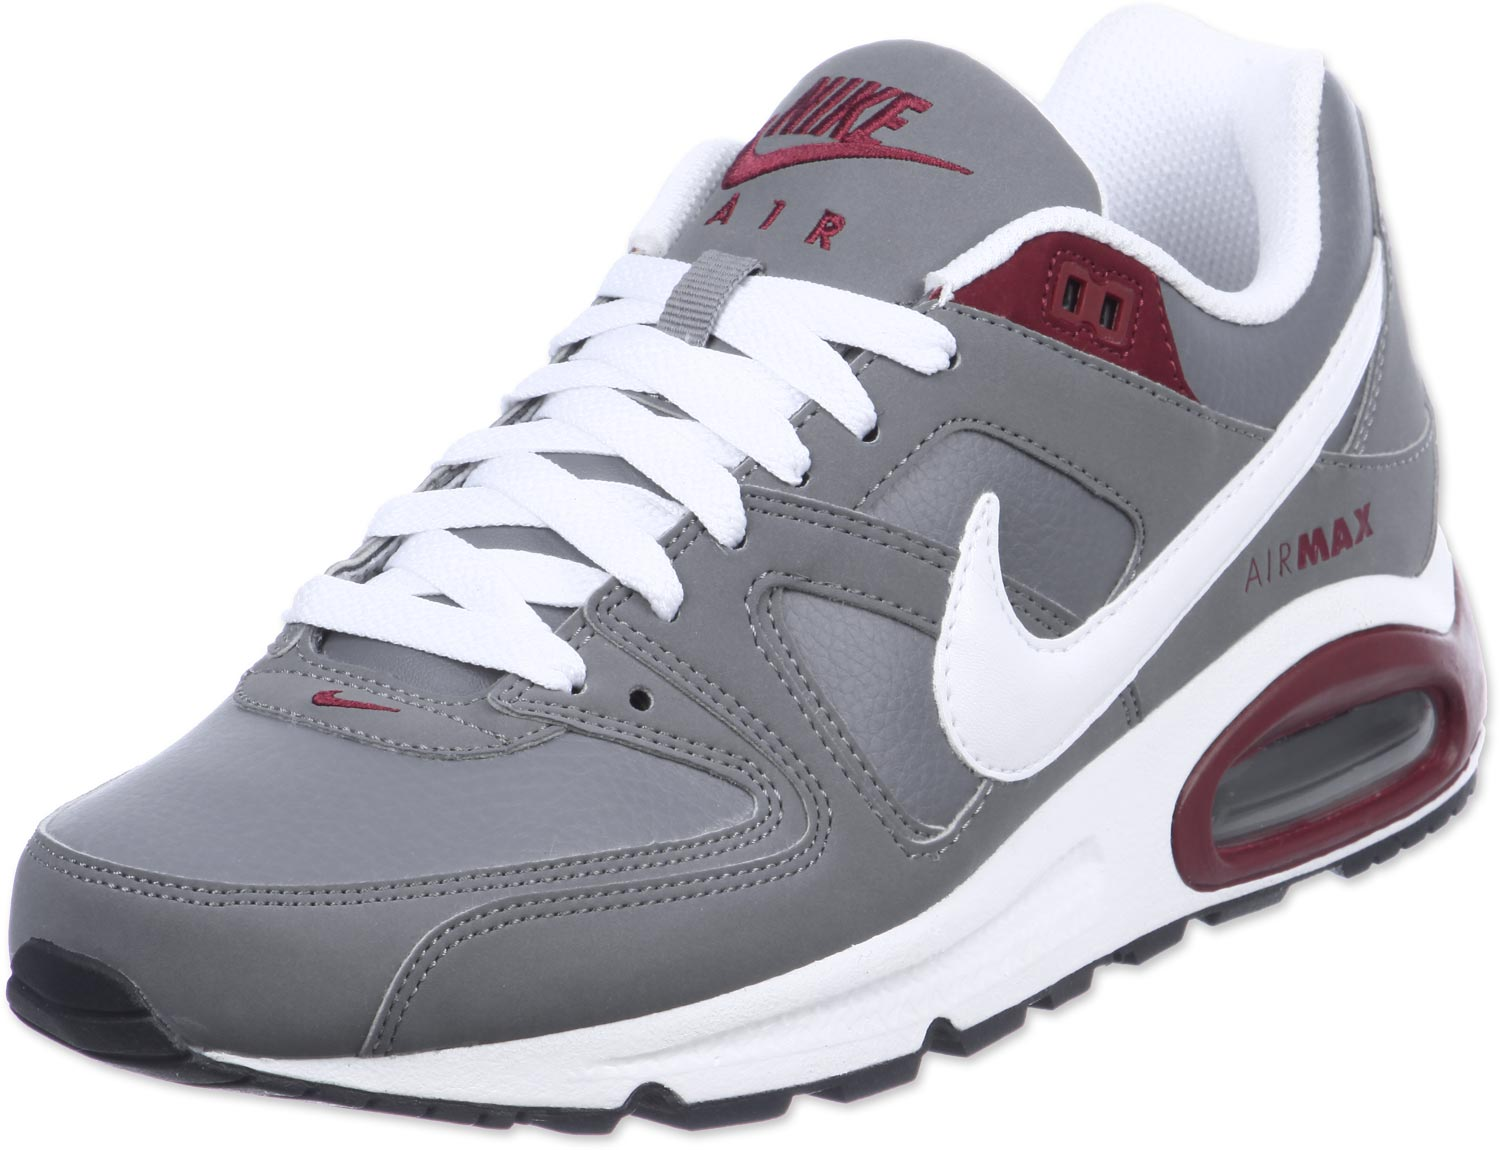 Nike Air Max Command Homme Officiel Atelier  [9875819]